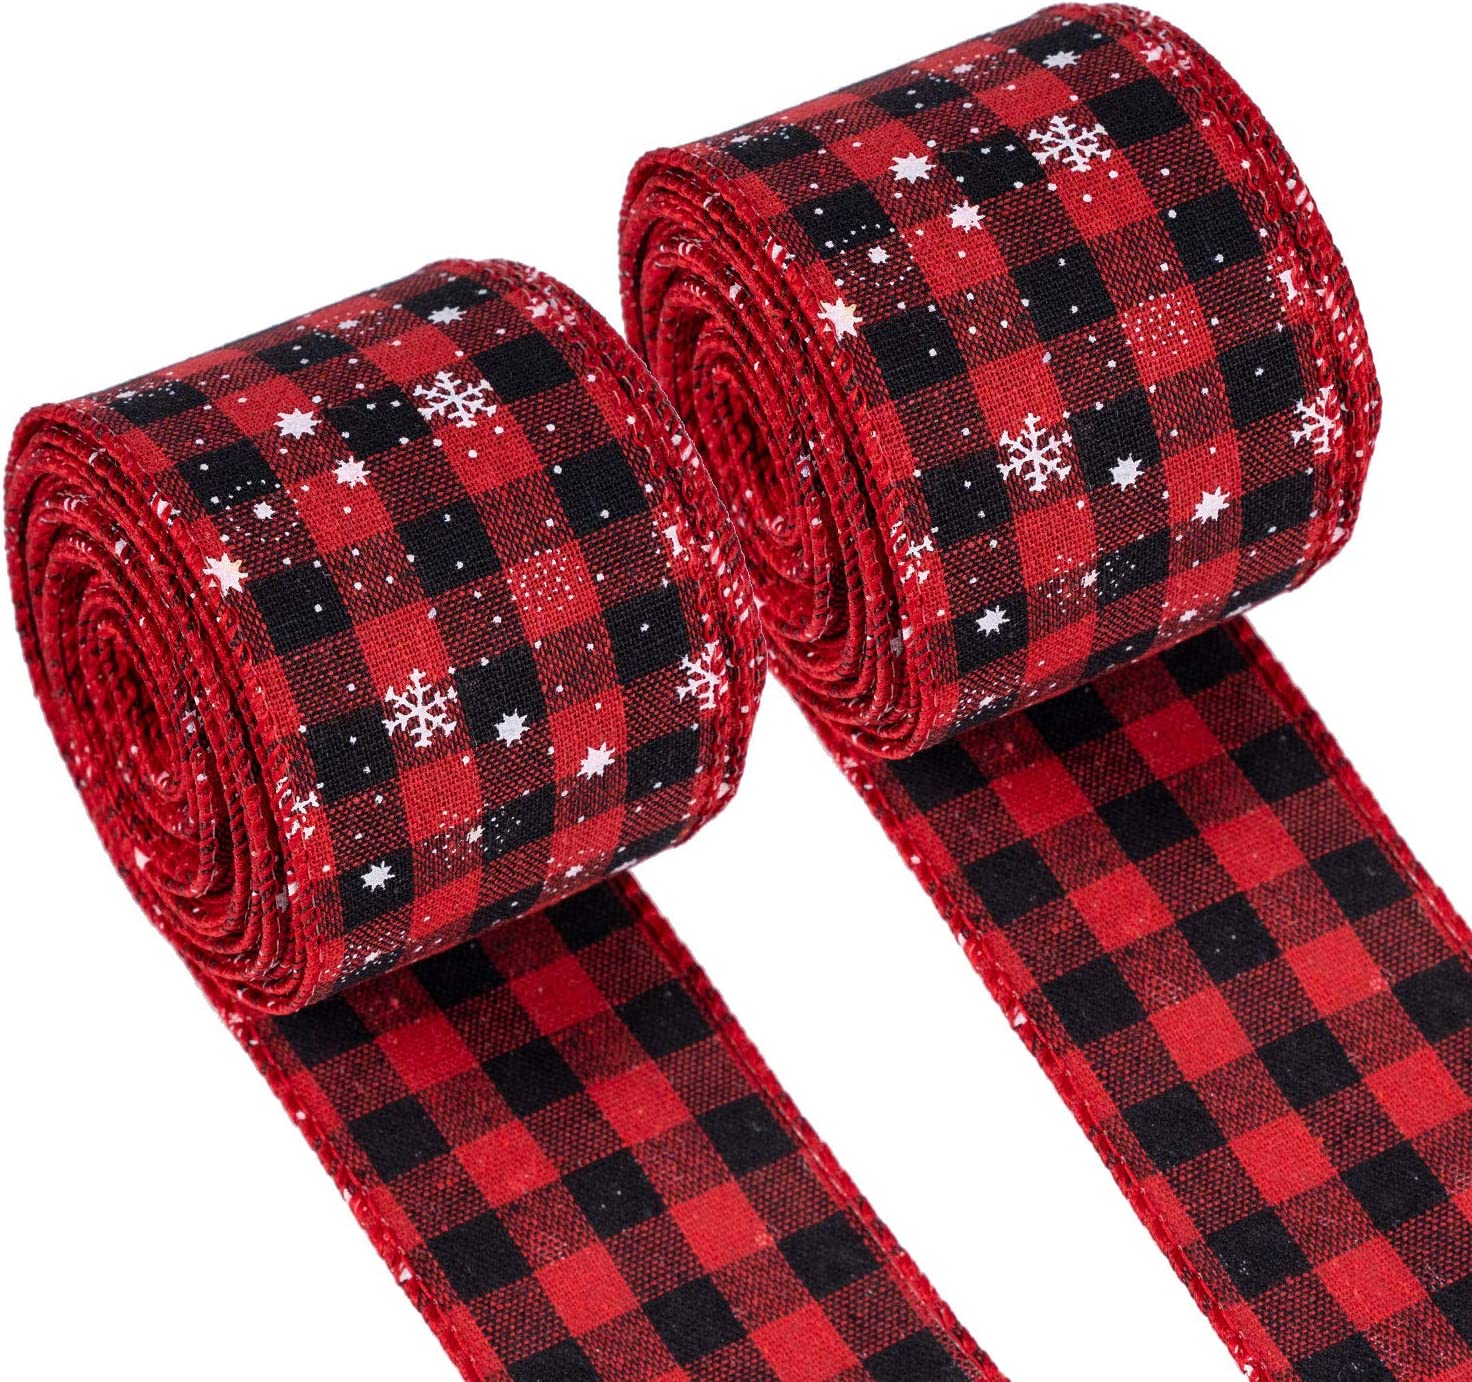 Holiday Decoration 50 Yard Roll Craft Royal Imports Black//Red Buffalo Checkered Plaid Ribbon Bulk 150 FT Spool 2.5 #40 Gingham Design for Floral